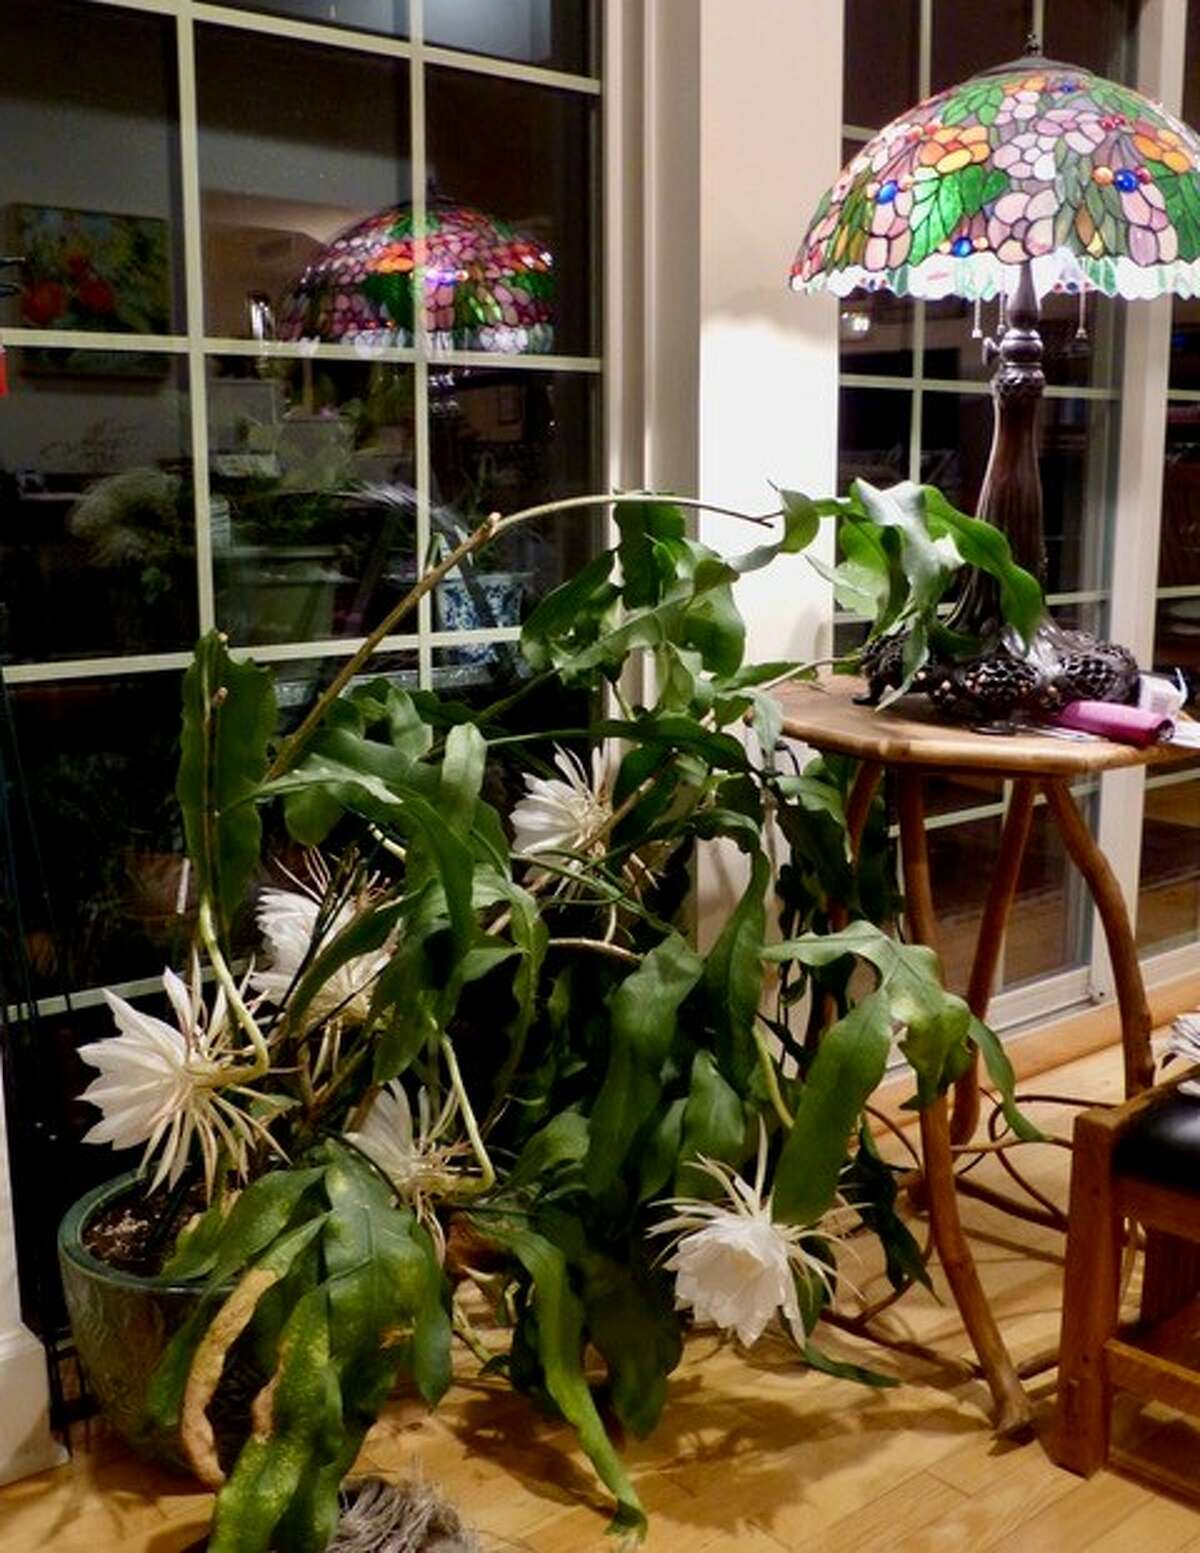 John Borel: The night-blooming Cereus blooms just once a year. At night. We often miss it. But on this extraordinary occasion in June, there were eleven blossoms. We could almost watch them bloom and then die. They were gone in the morning.